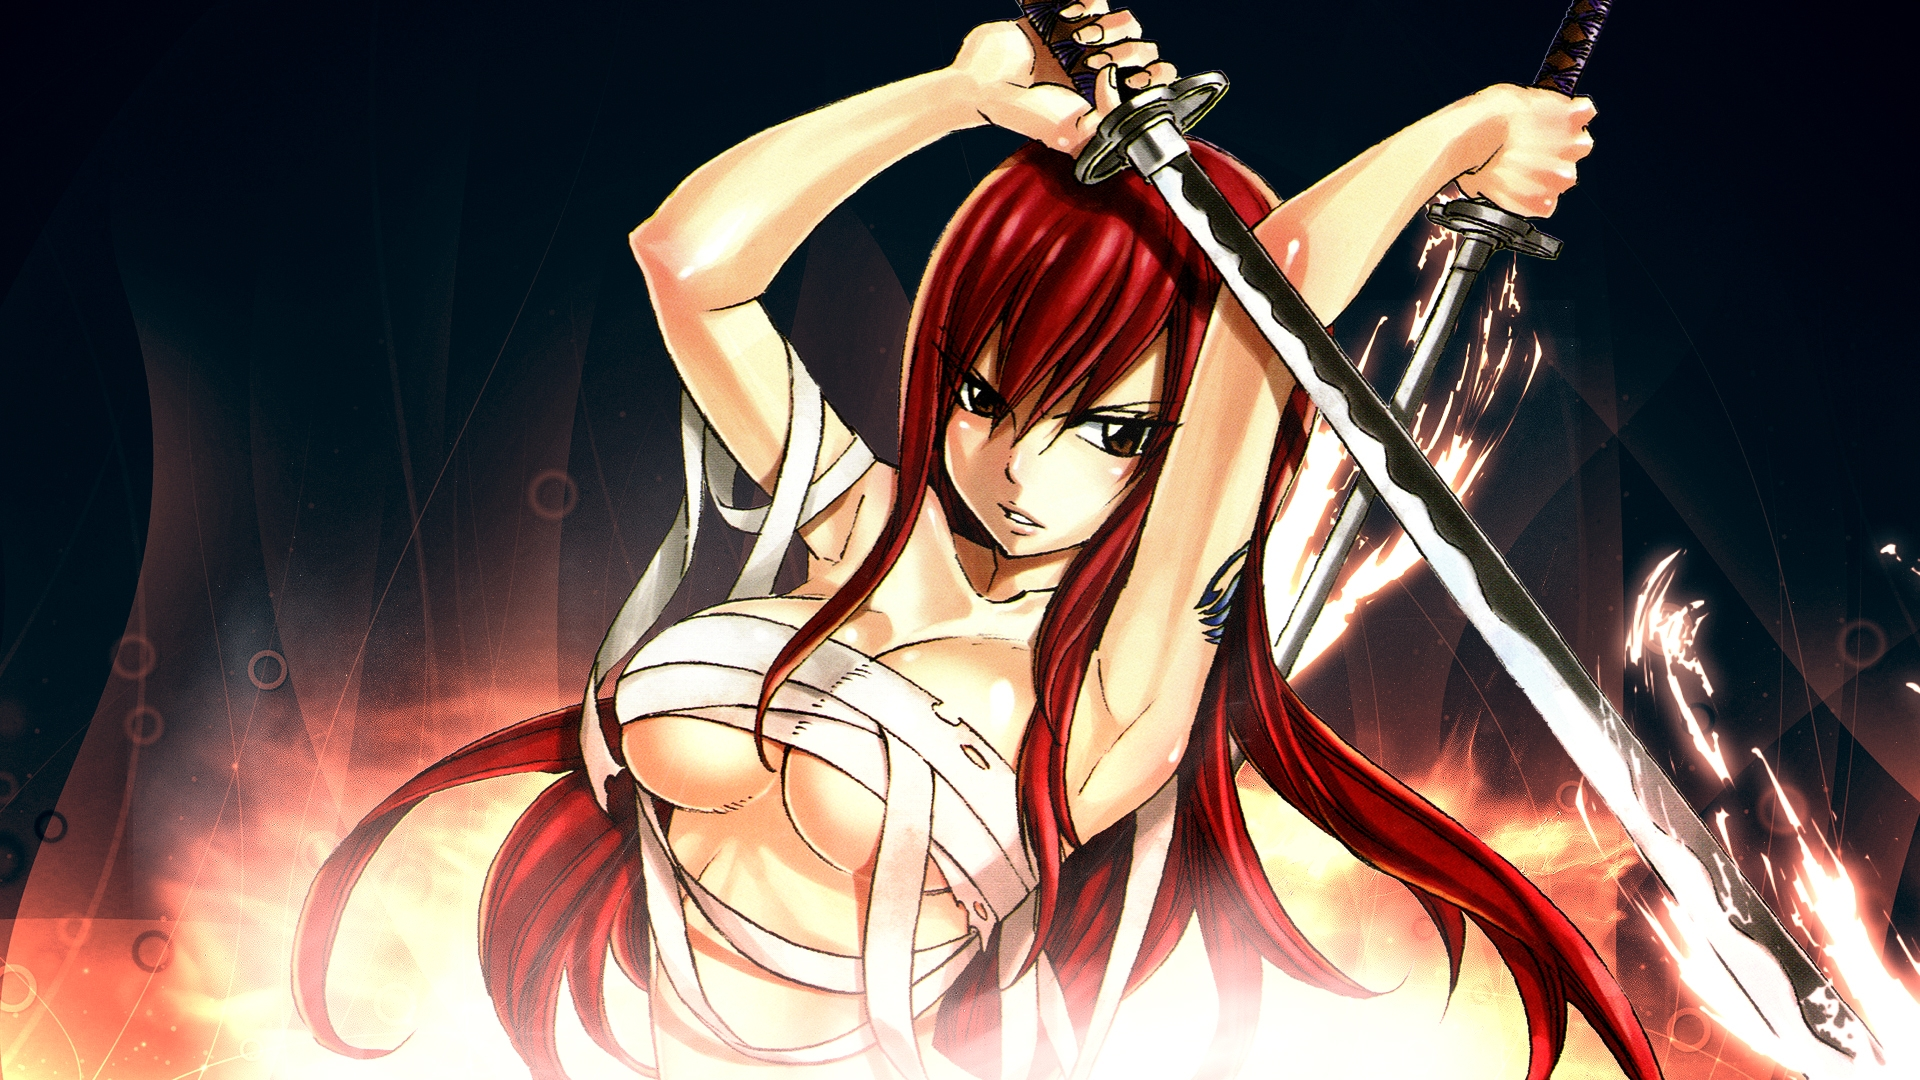 Erza Scarlet, Fairy Tail